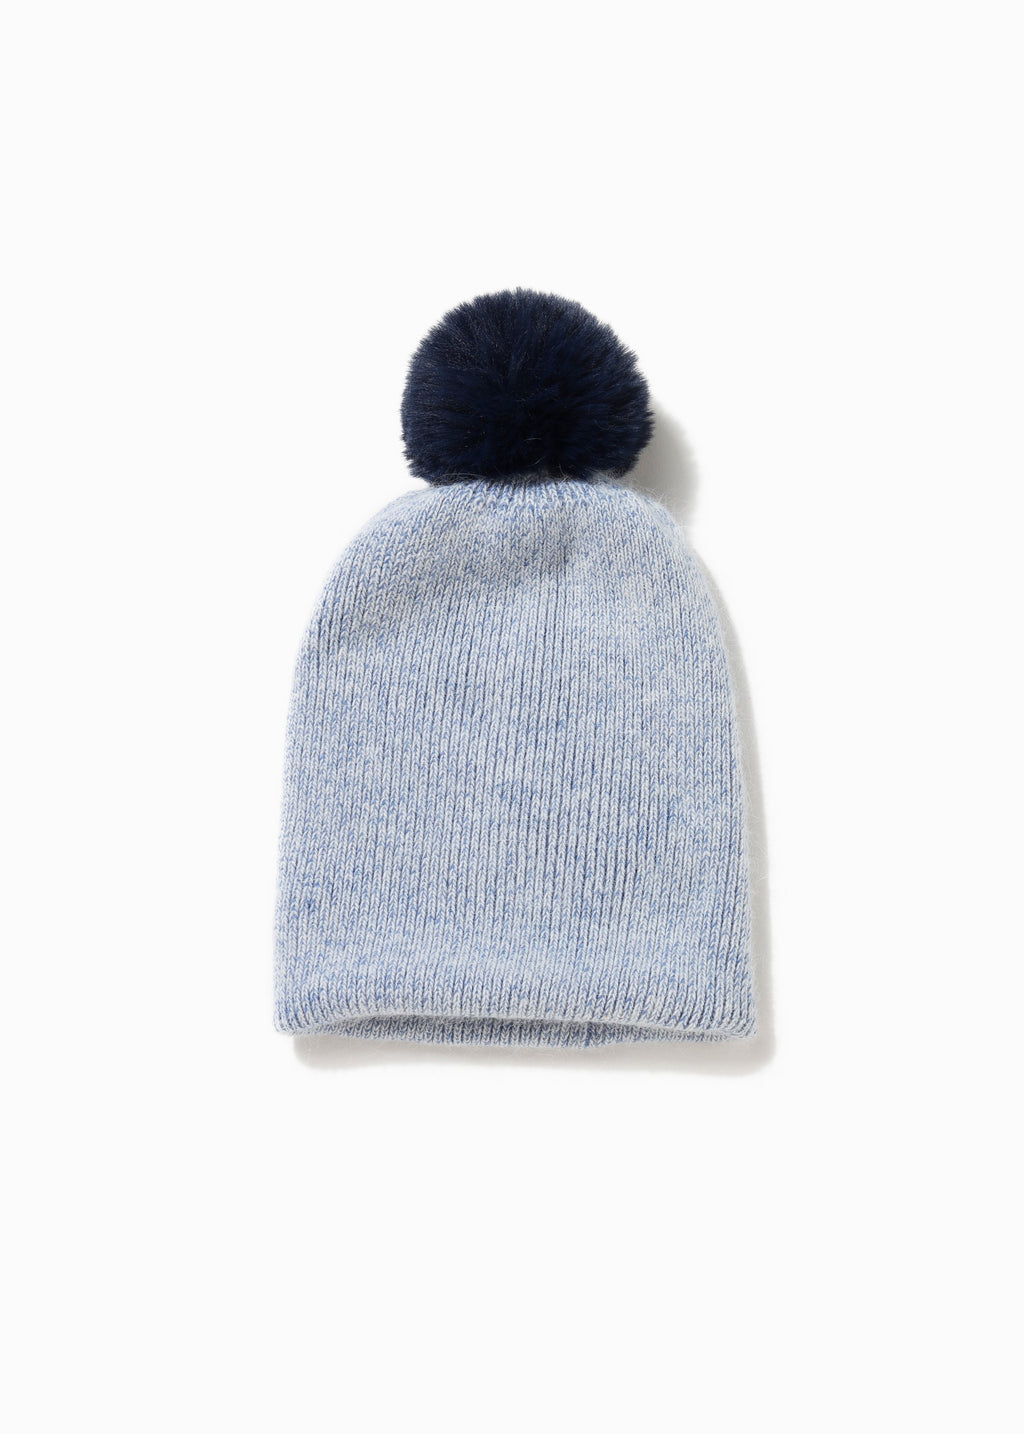 2-in-1 Scarf Hat Combo - Blue